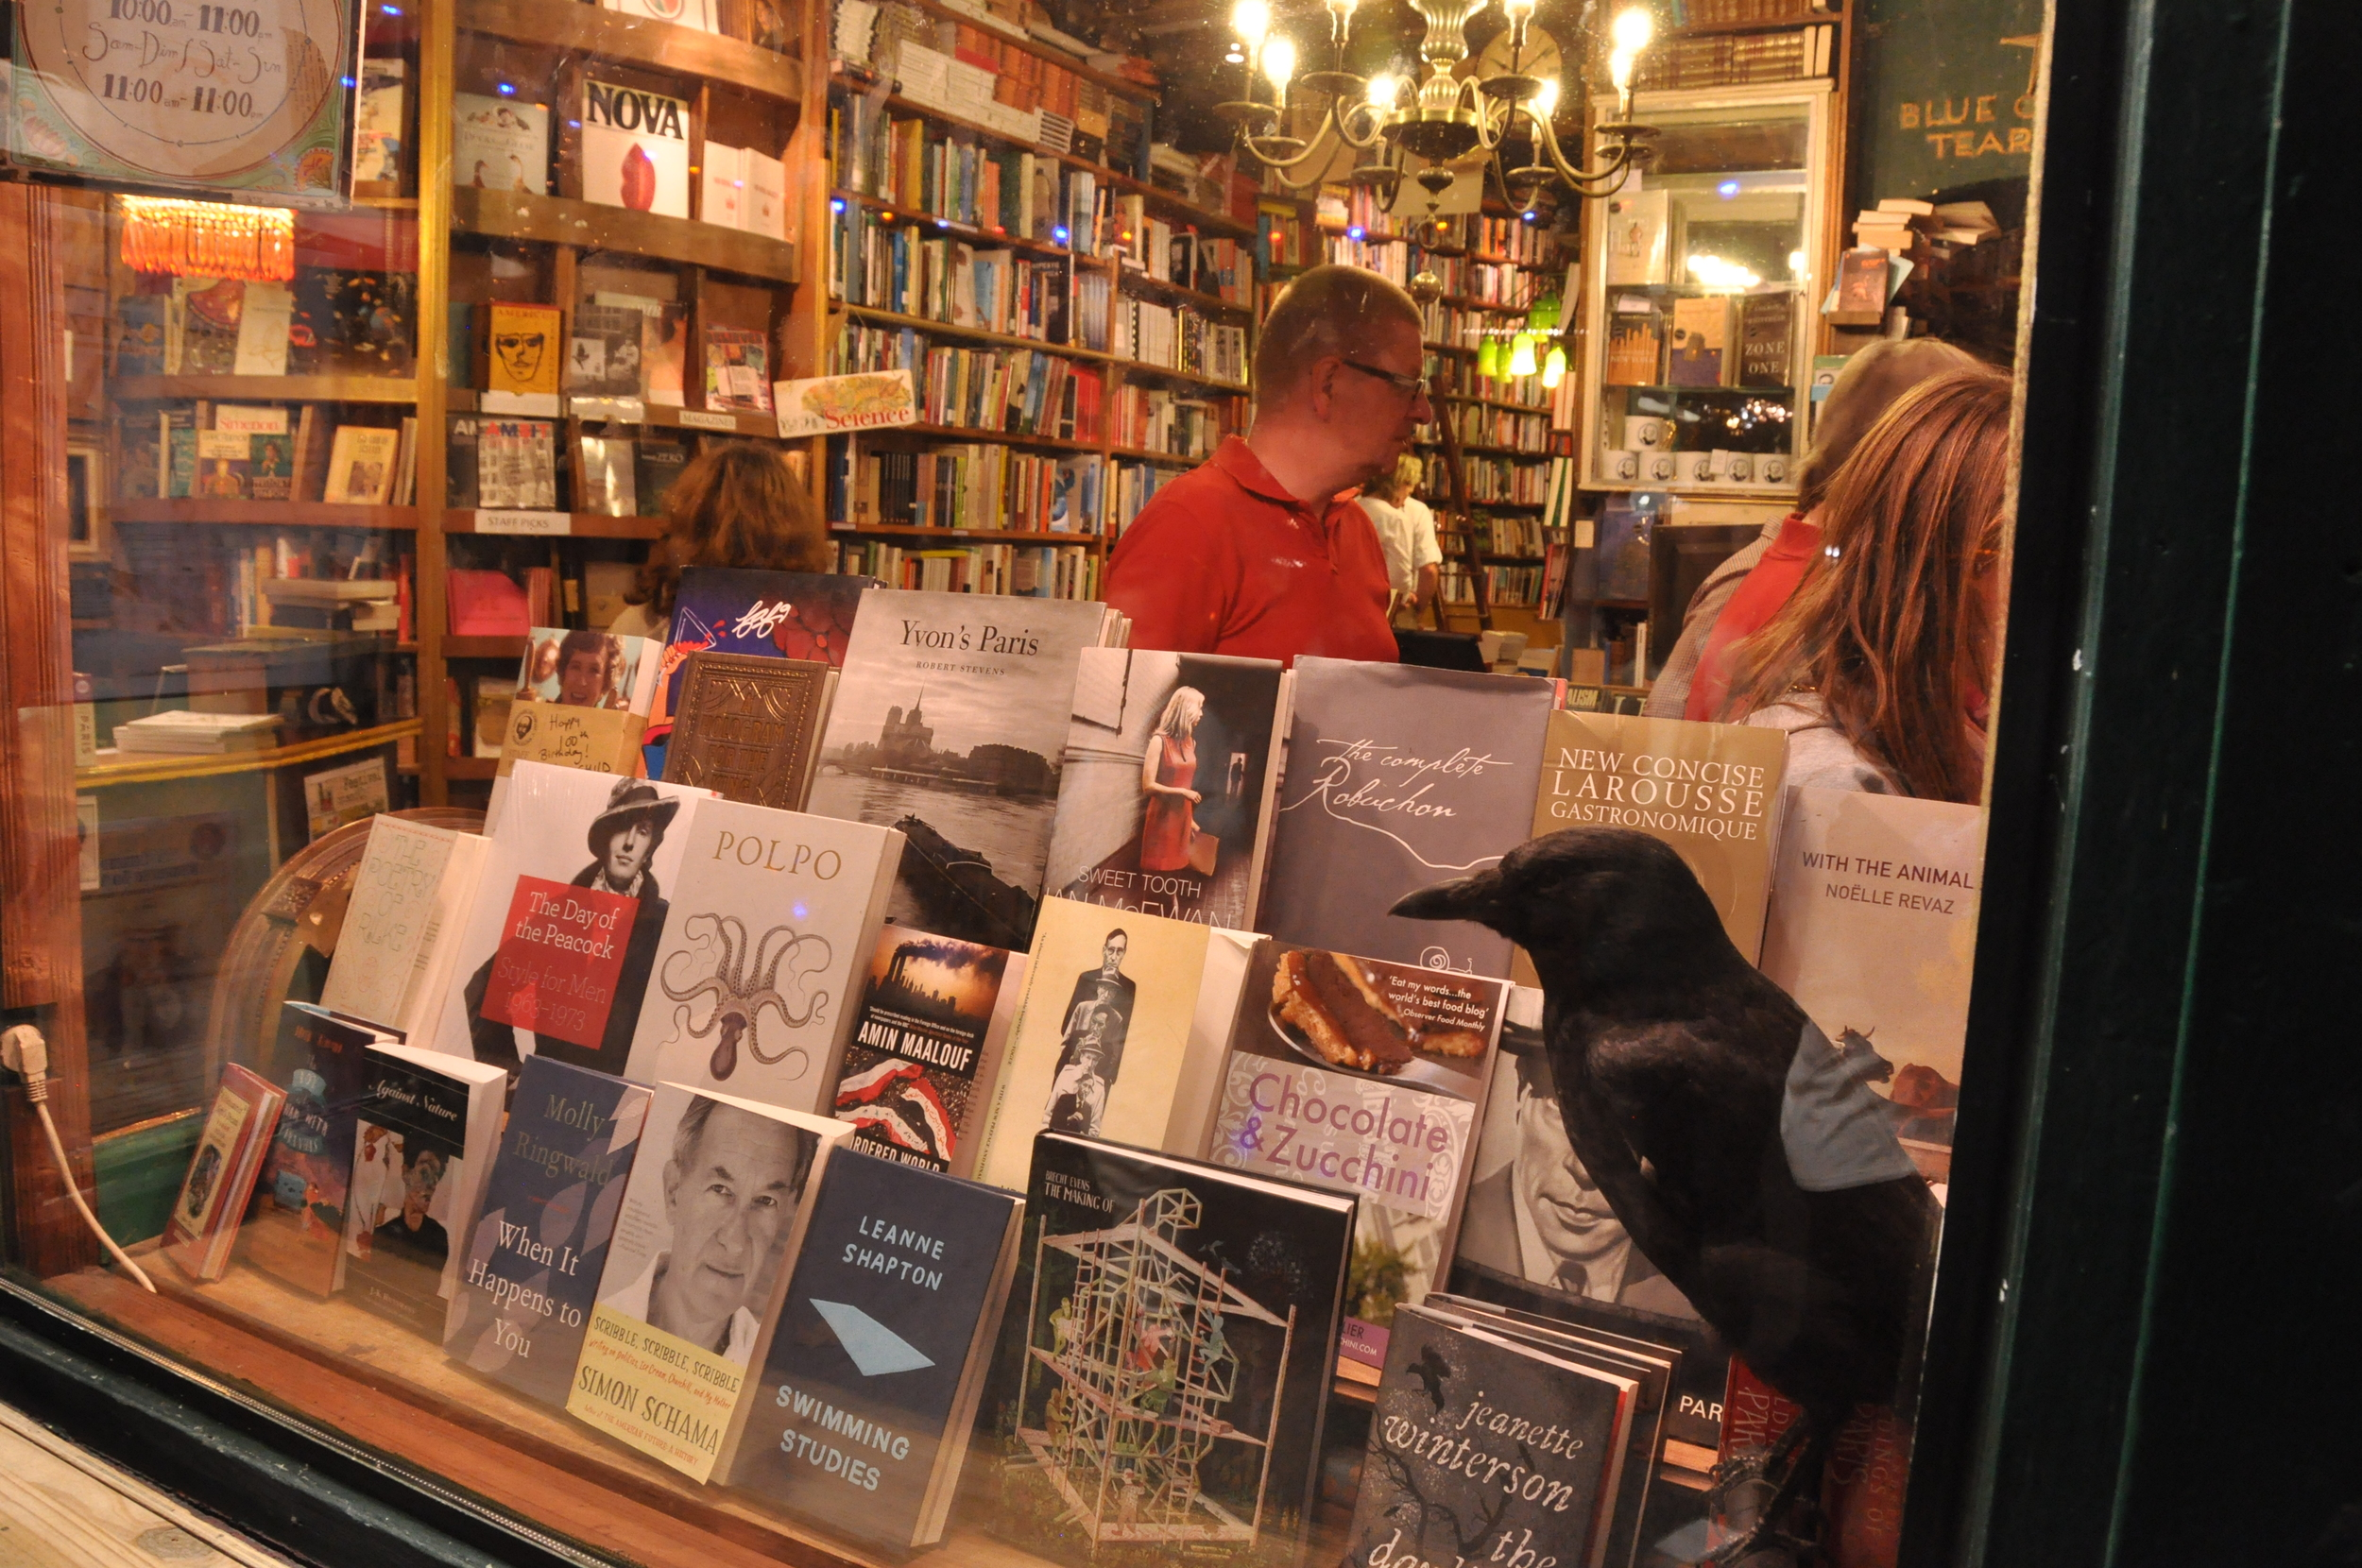 Shakespeare & Company bookstore - I came out loaded down with new & vintage books